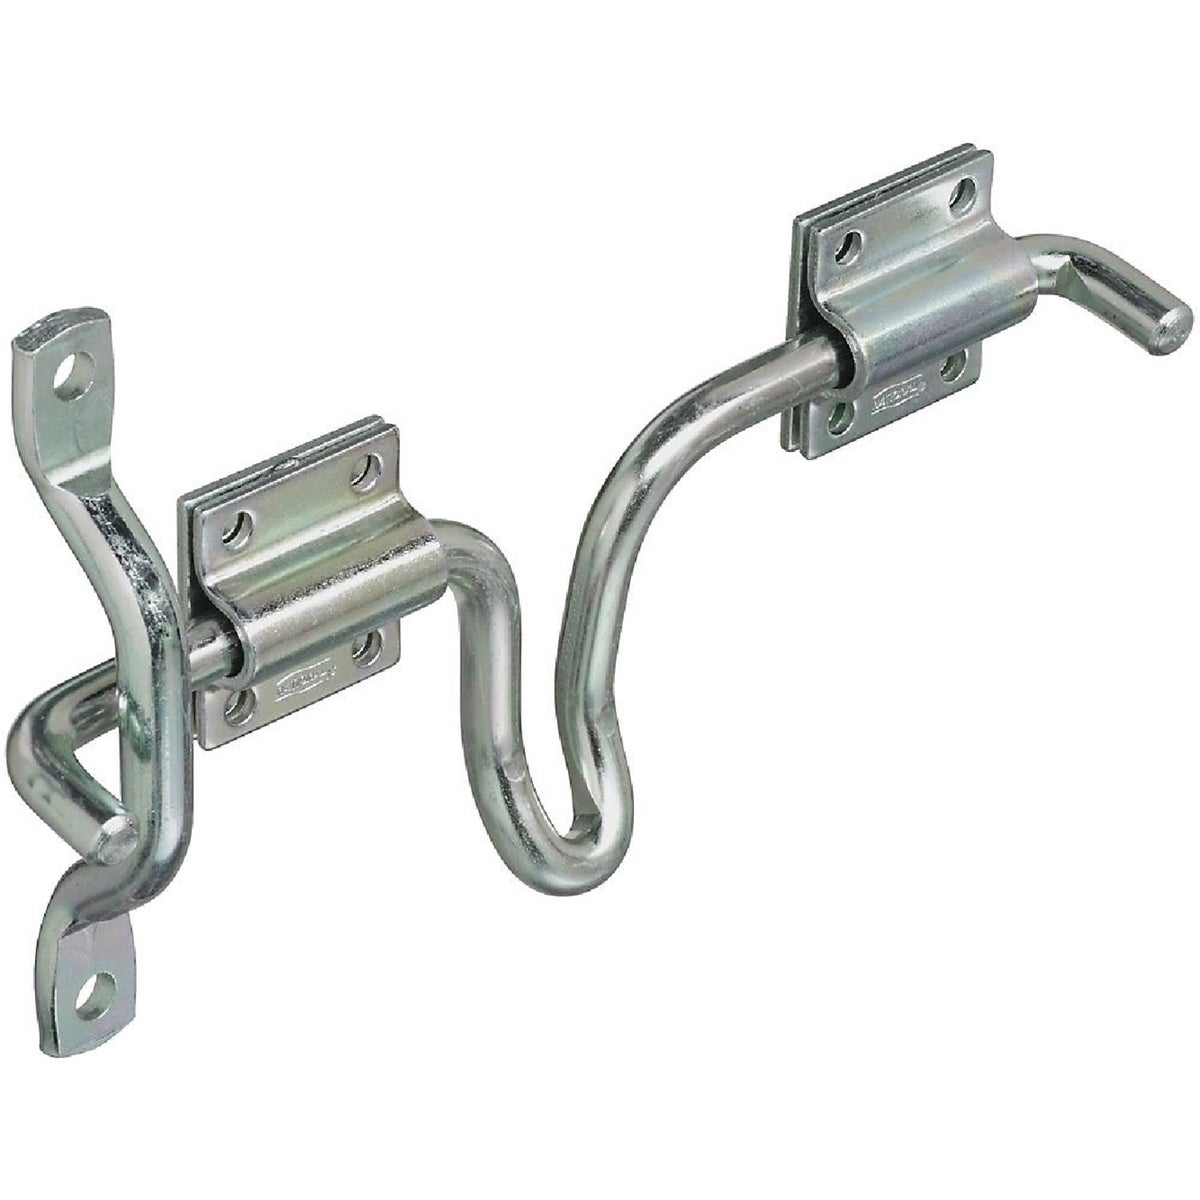 DOOR & GATE LATCH - N160747 by National Mfg Co